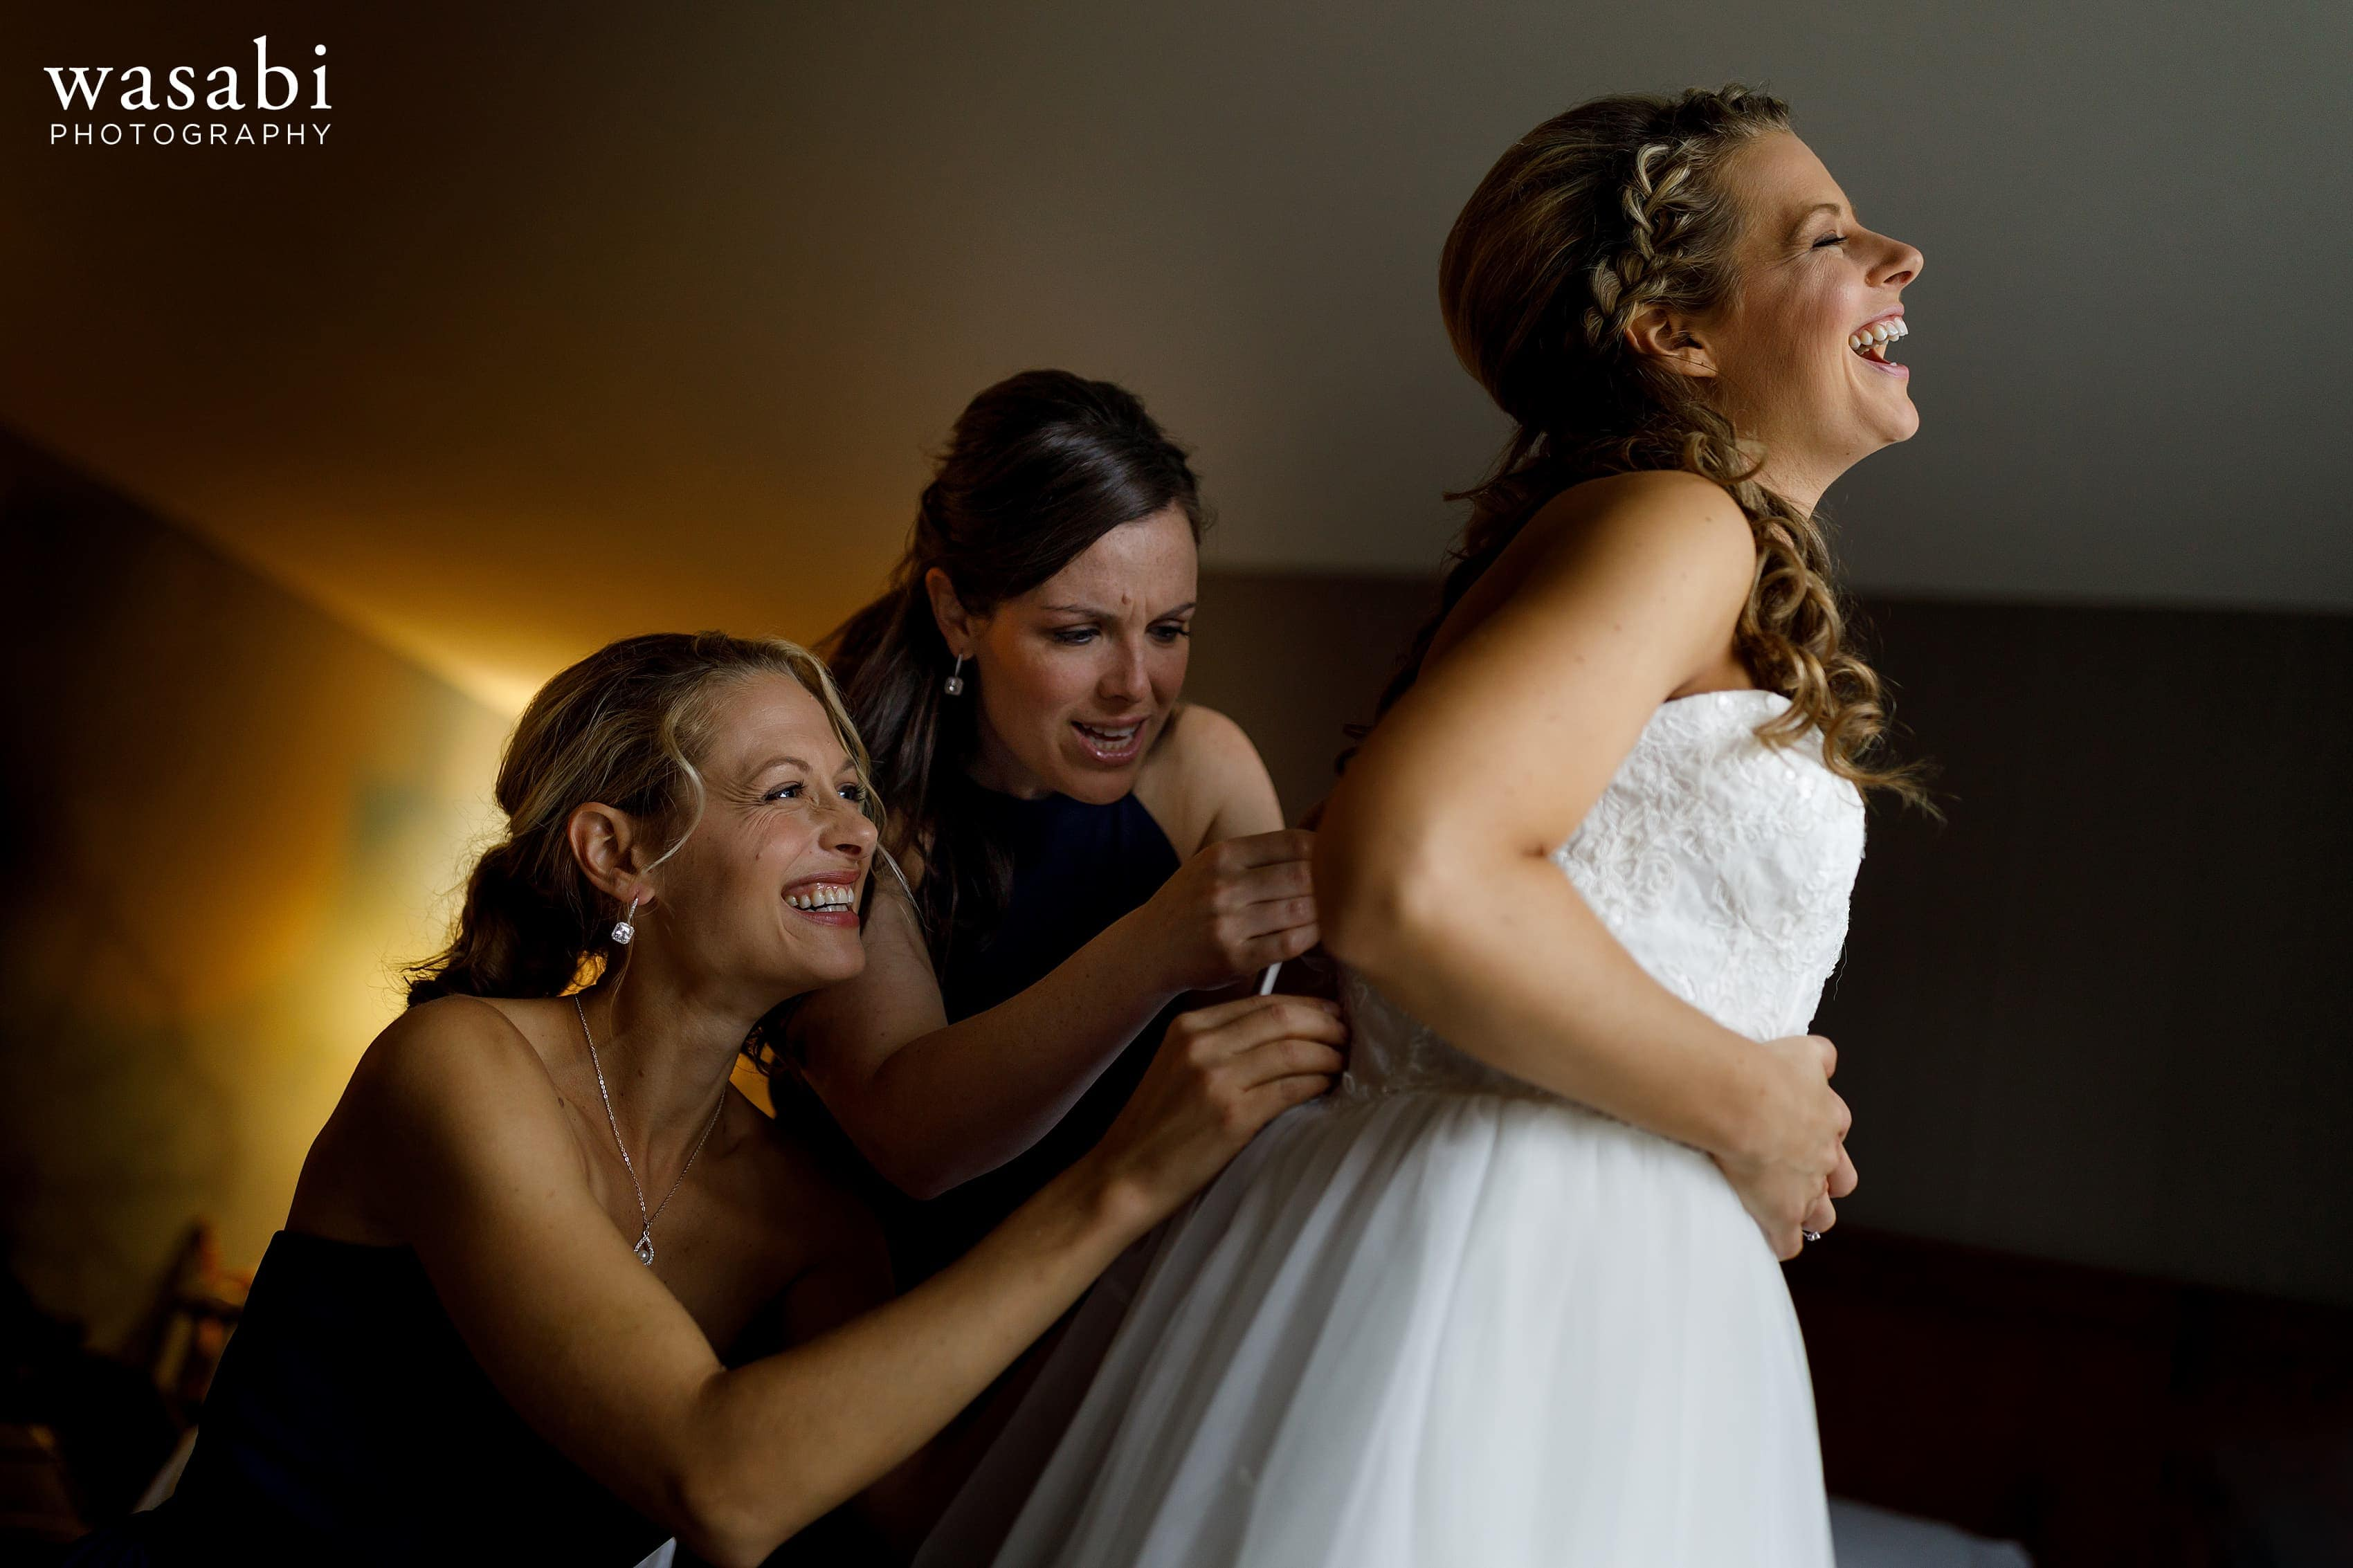 Bride laughs as bridesmaids help her into the dress at Courtyard Marriott Downtown Grand Rapids before her wedding